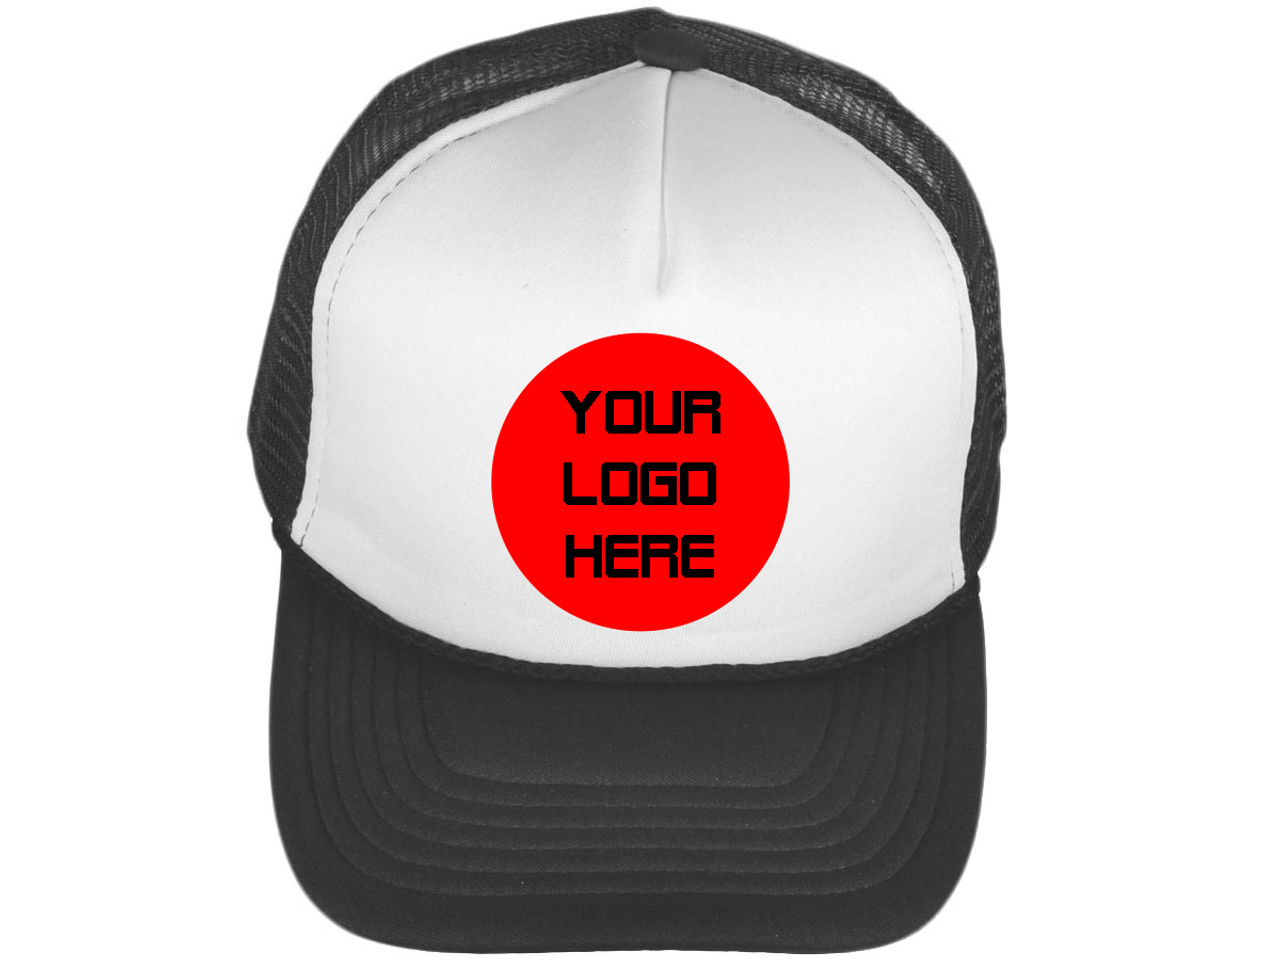 576pcs. Custom Trucker Hat Wholesale - Cheap Overseas ... f45d7fb86a7